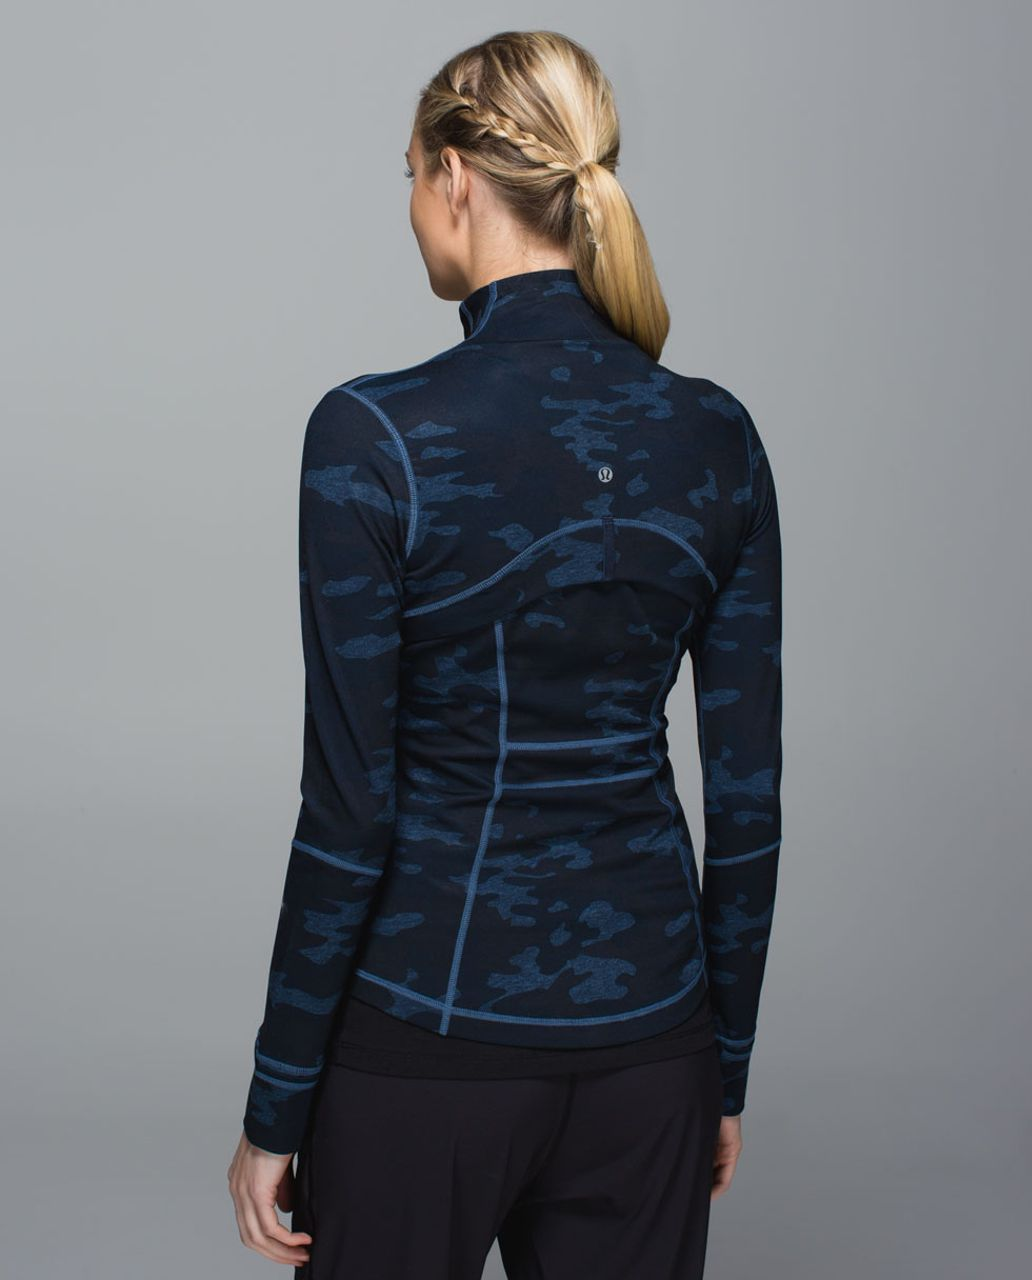 Lululemon Define Jacket - Heathered Texture Lotus Camo Oil Slick Blue